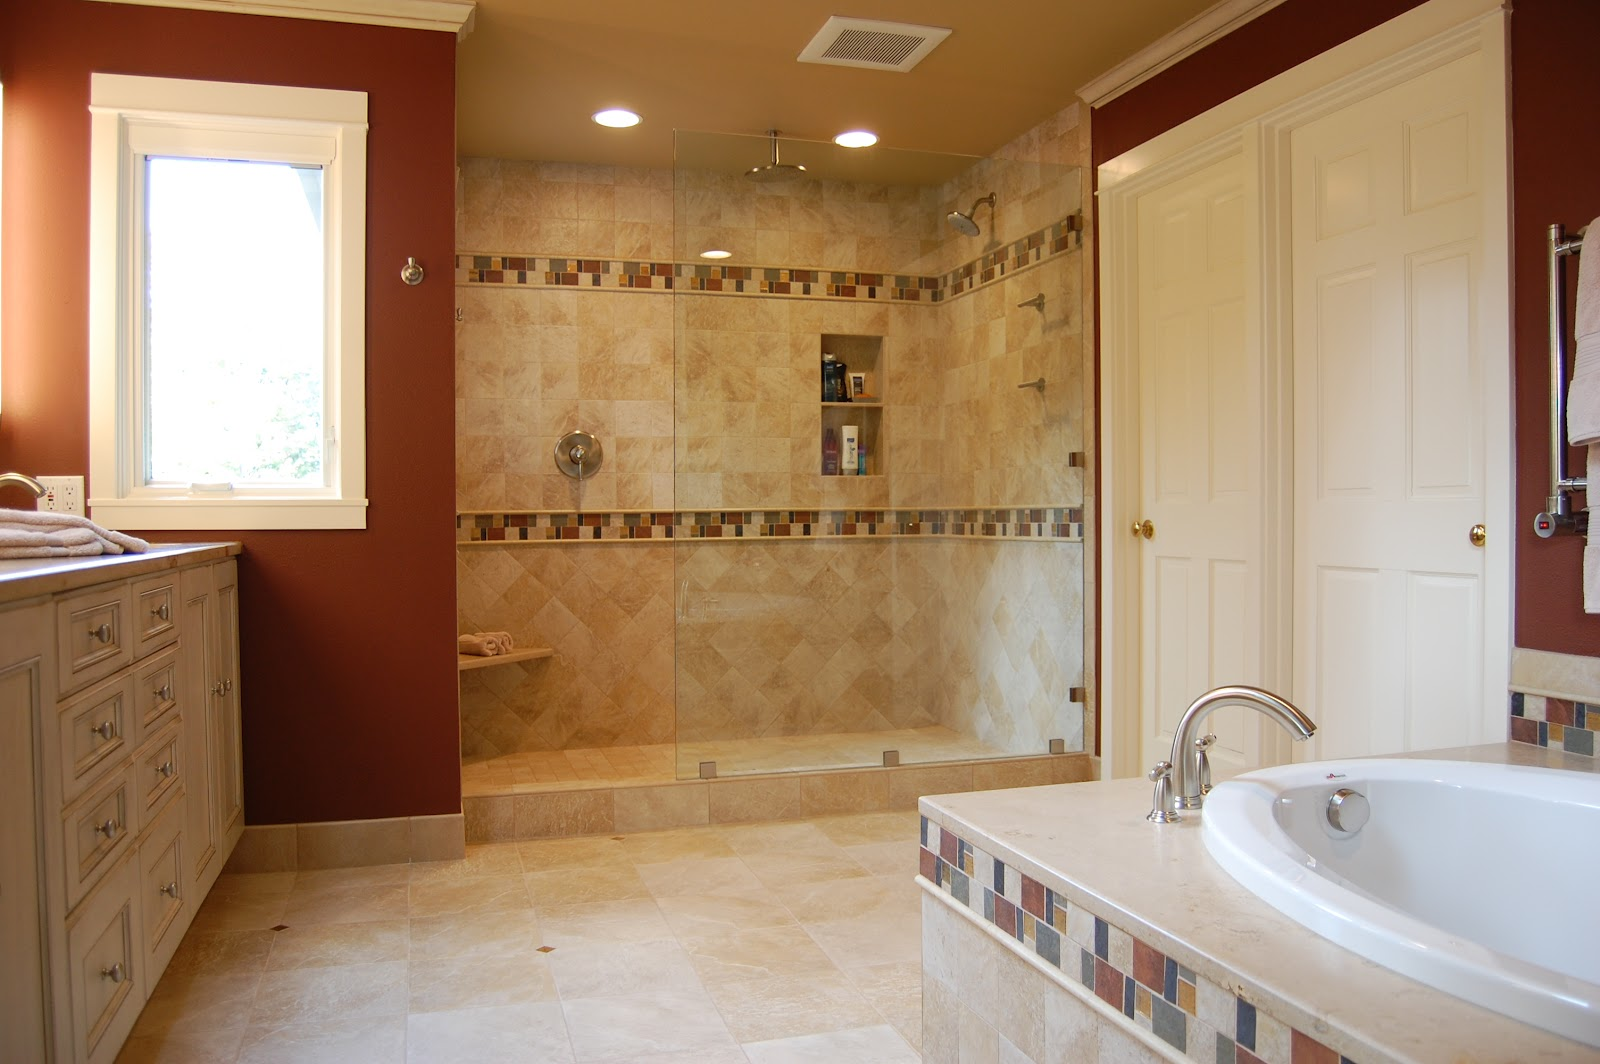 interesting bathroom remodel ideas with decorative trims on wall and tub and brown wall accents